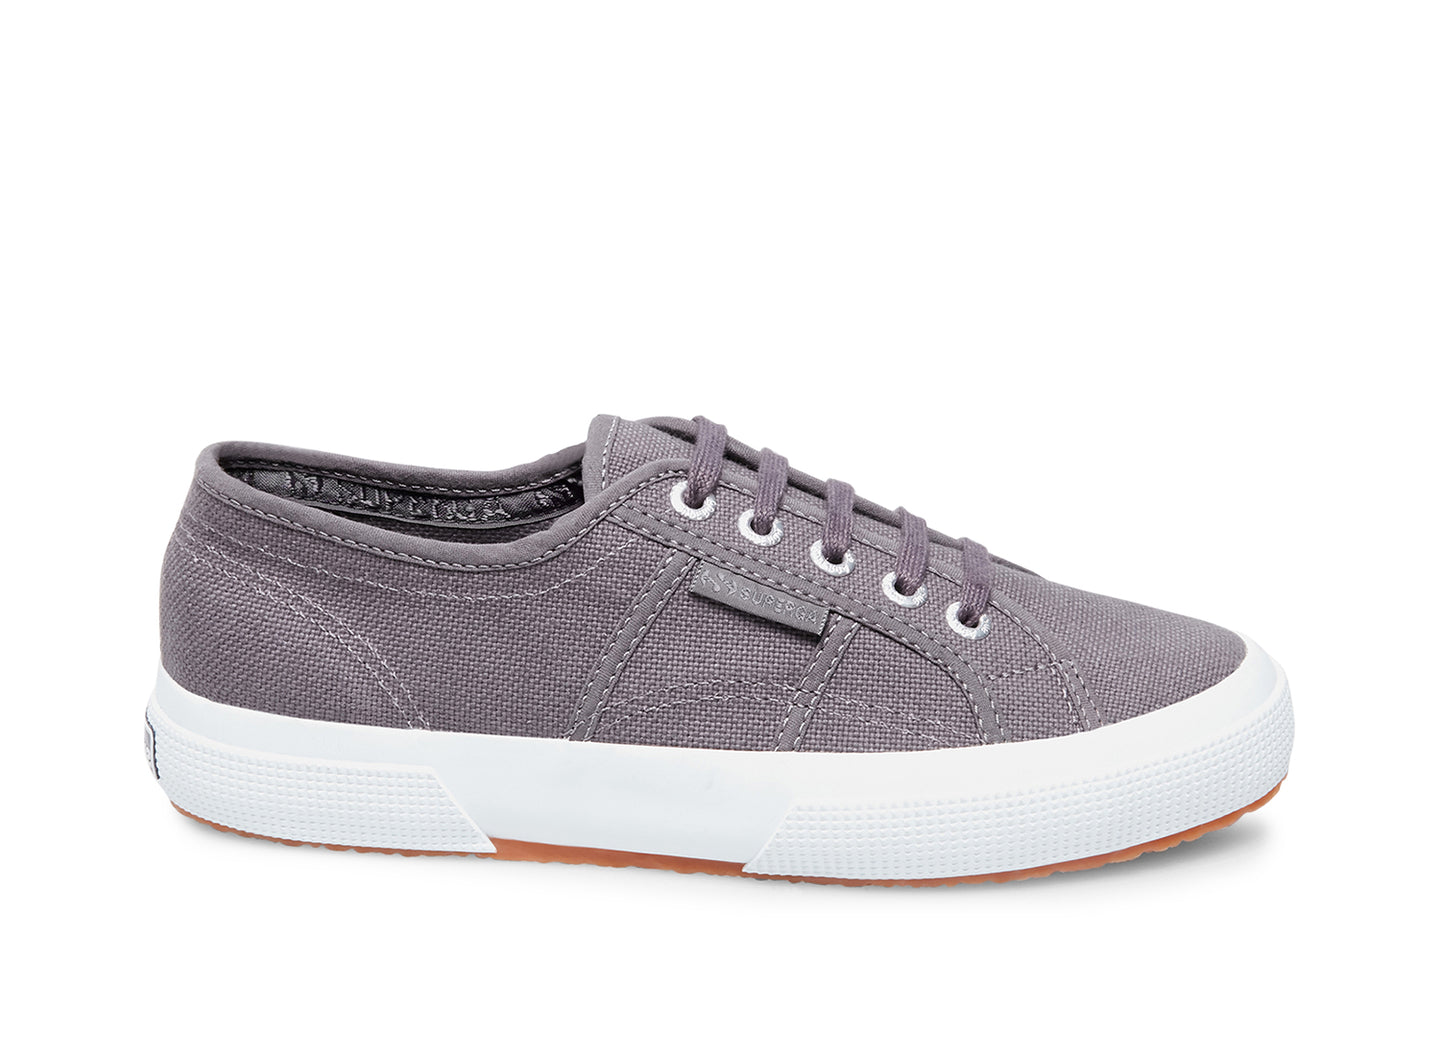 2750 COTU CLASSIC GREY CANVAS - Women's and Men's